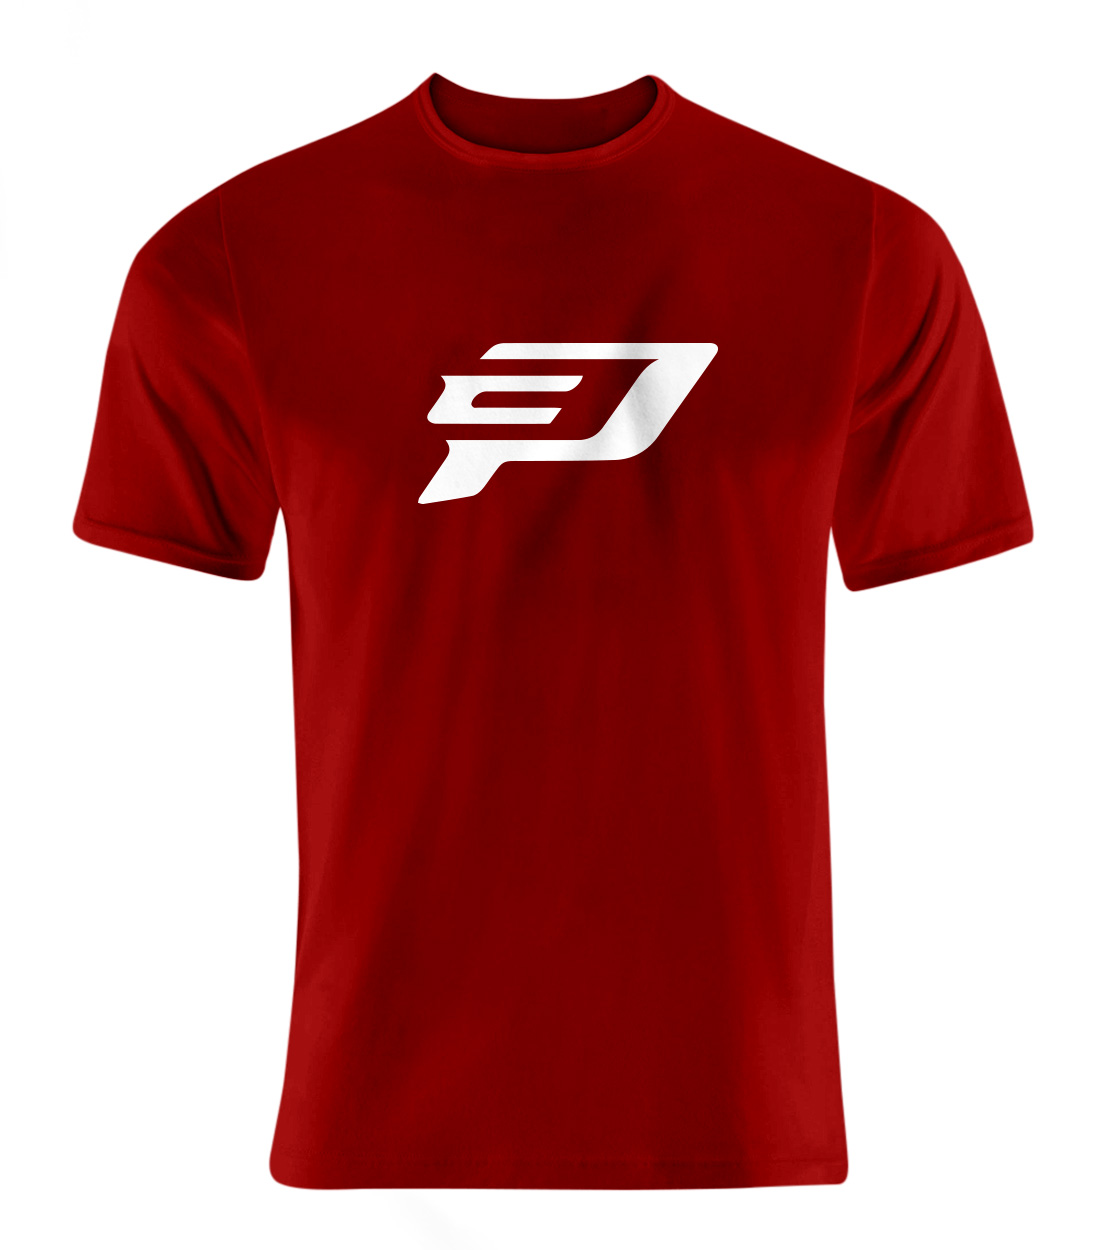 Chris Paul Logo Tshirt (TSH-RED-PLT-PLYR-CPLOGO-604)